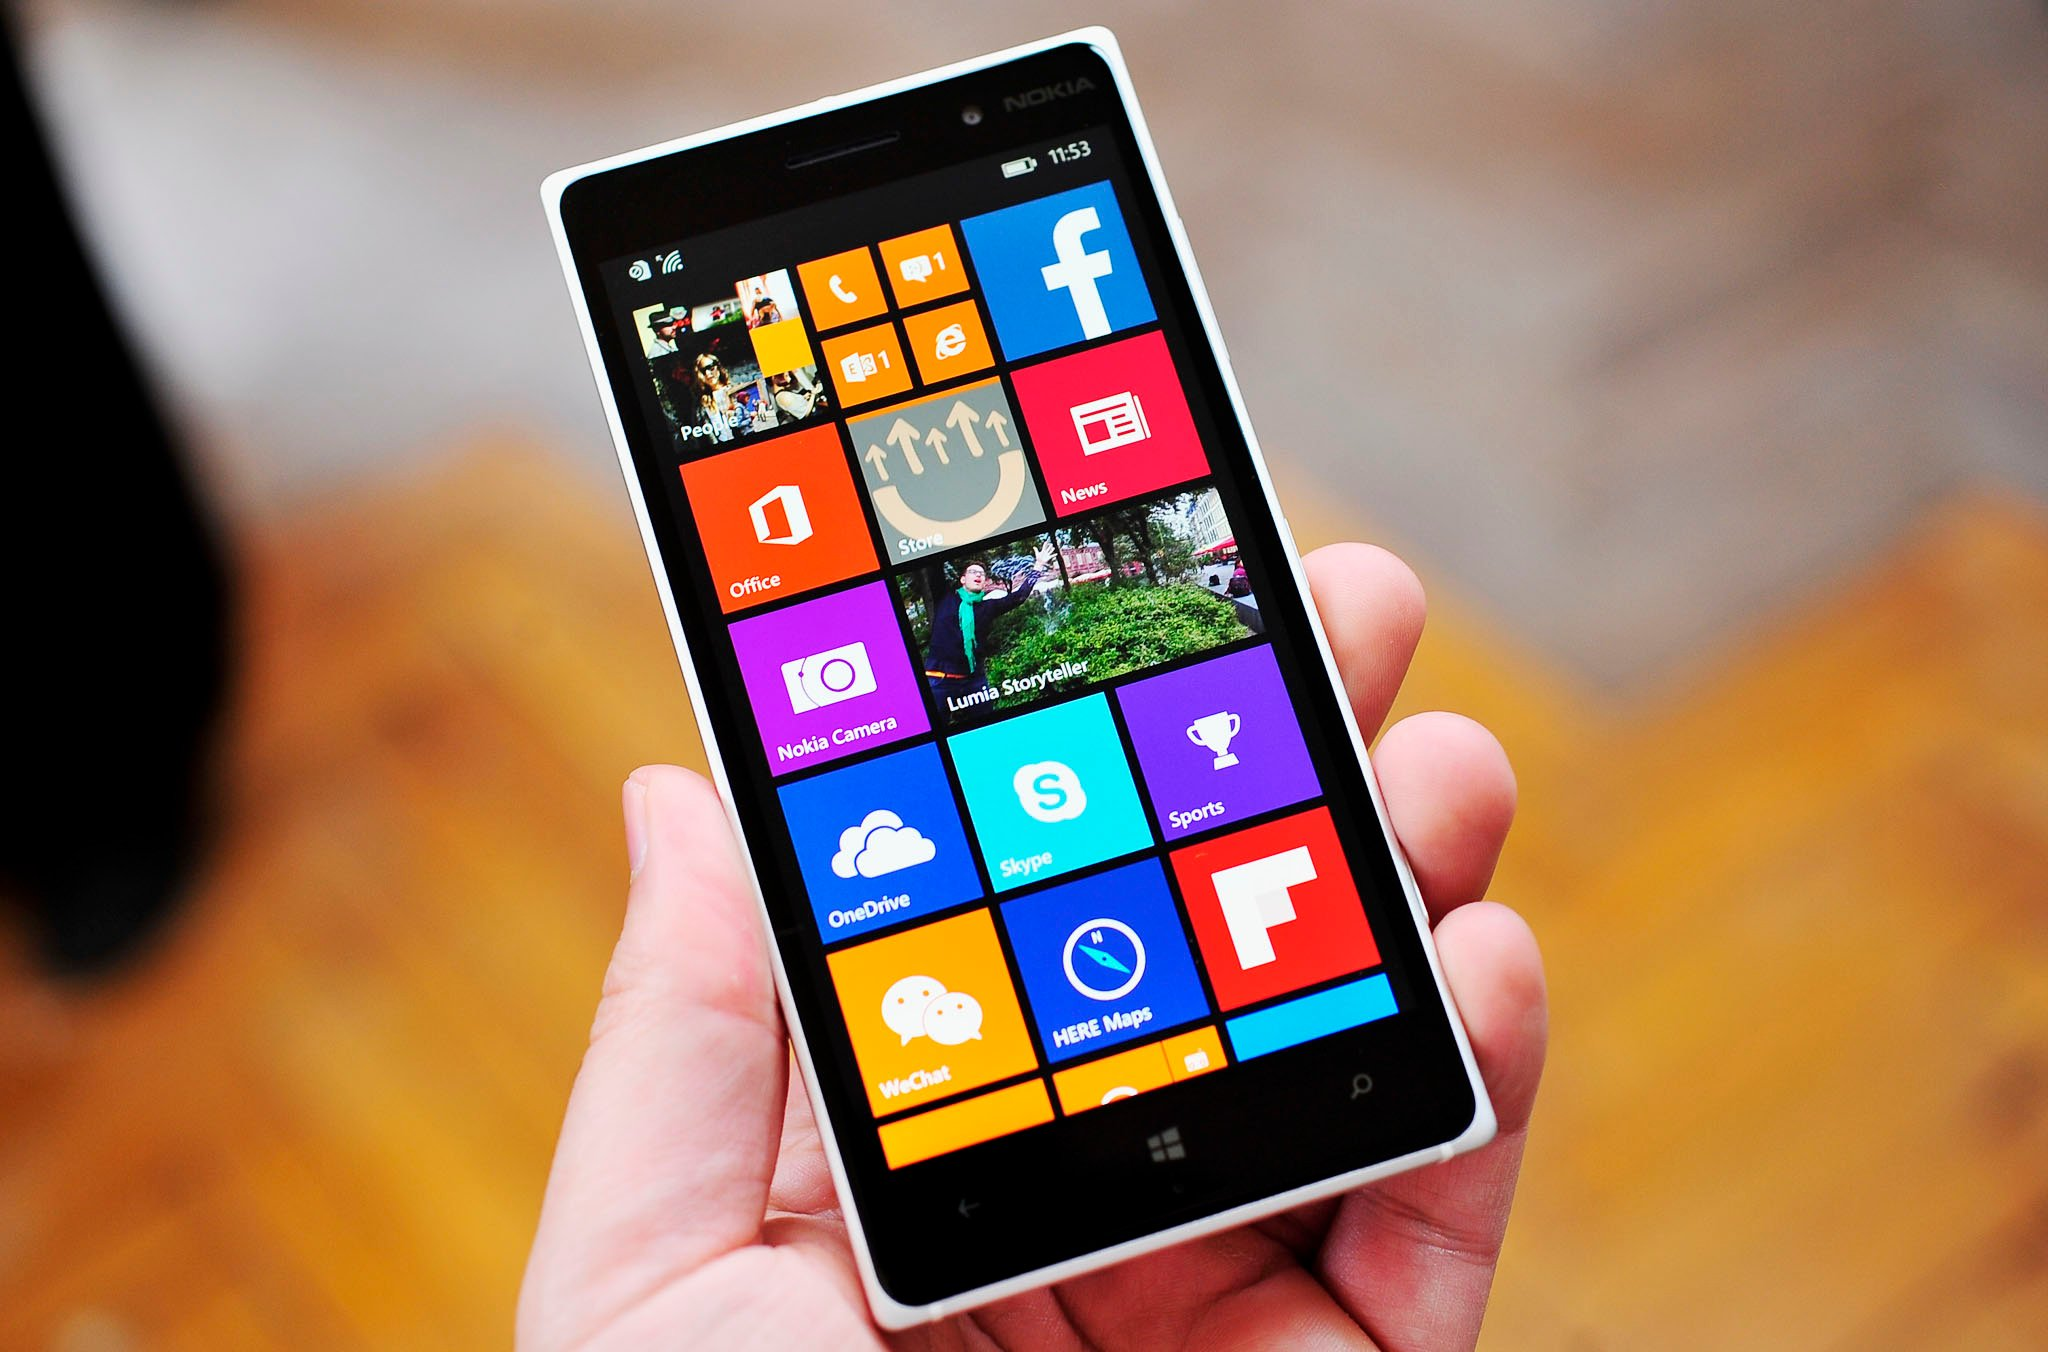 The Lumia 830 Is Reaching The End Of Its Product Life 10